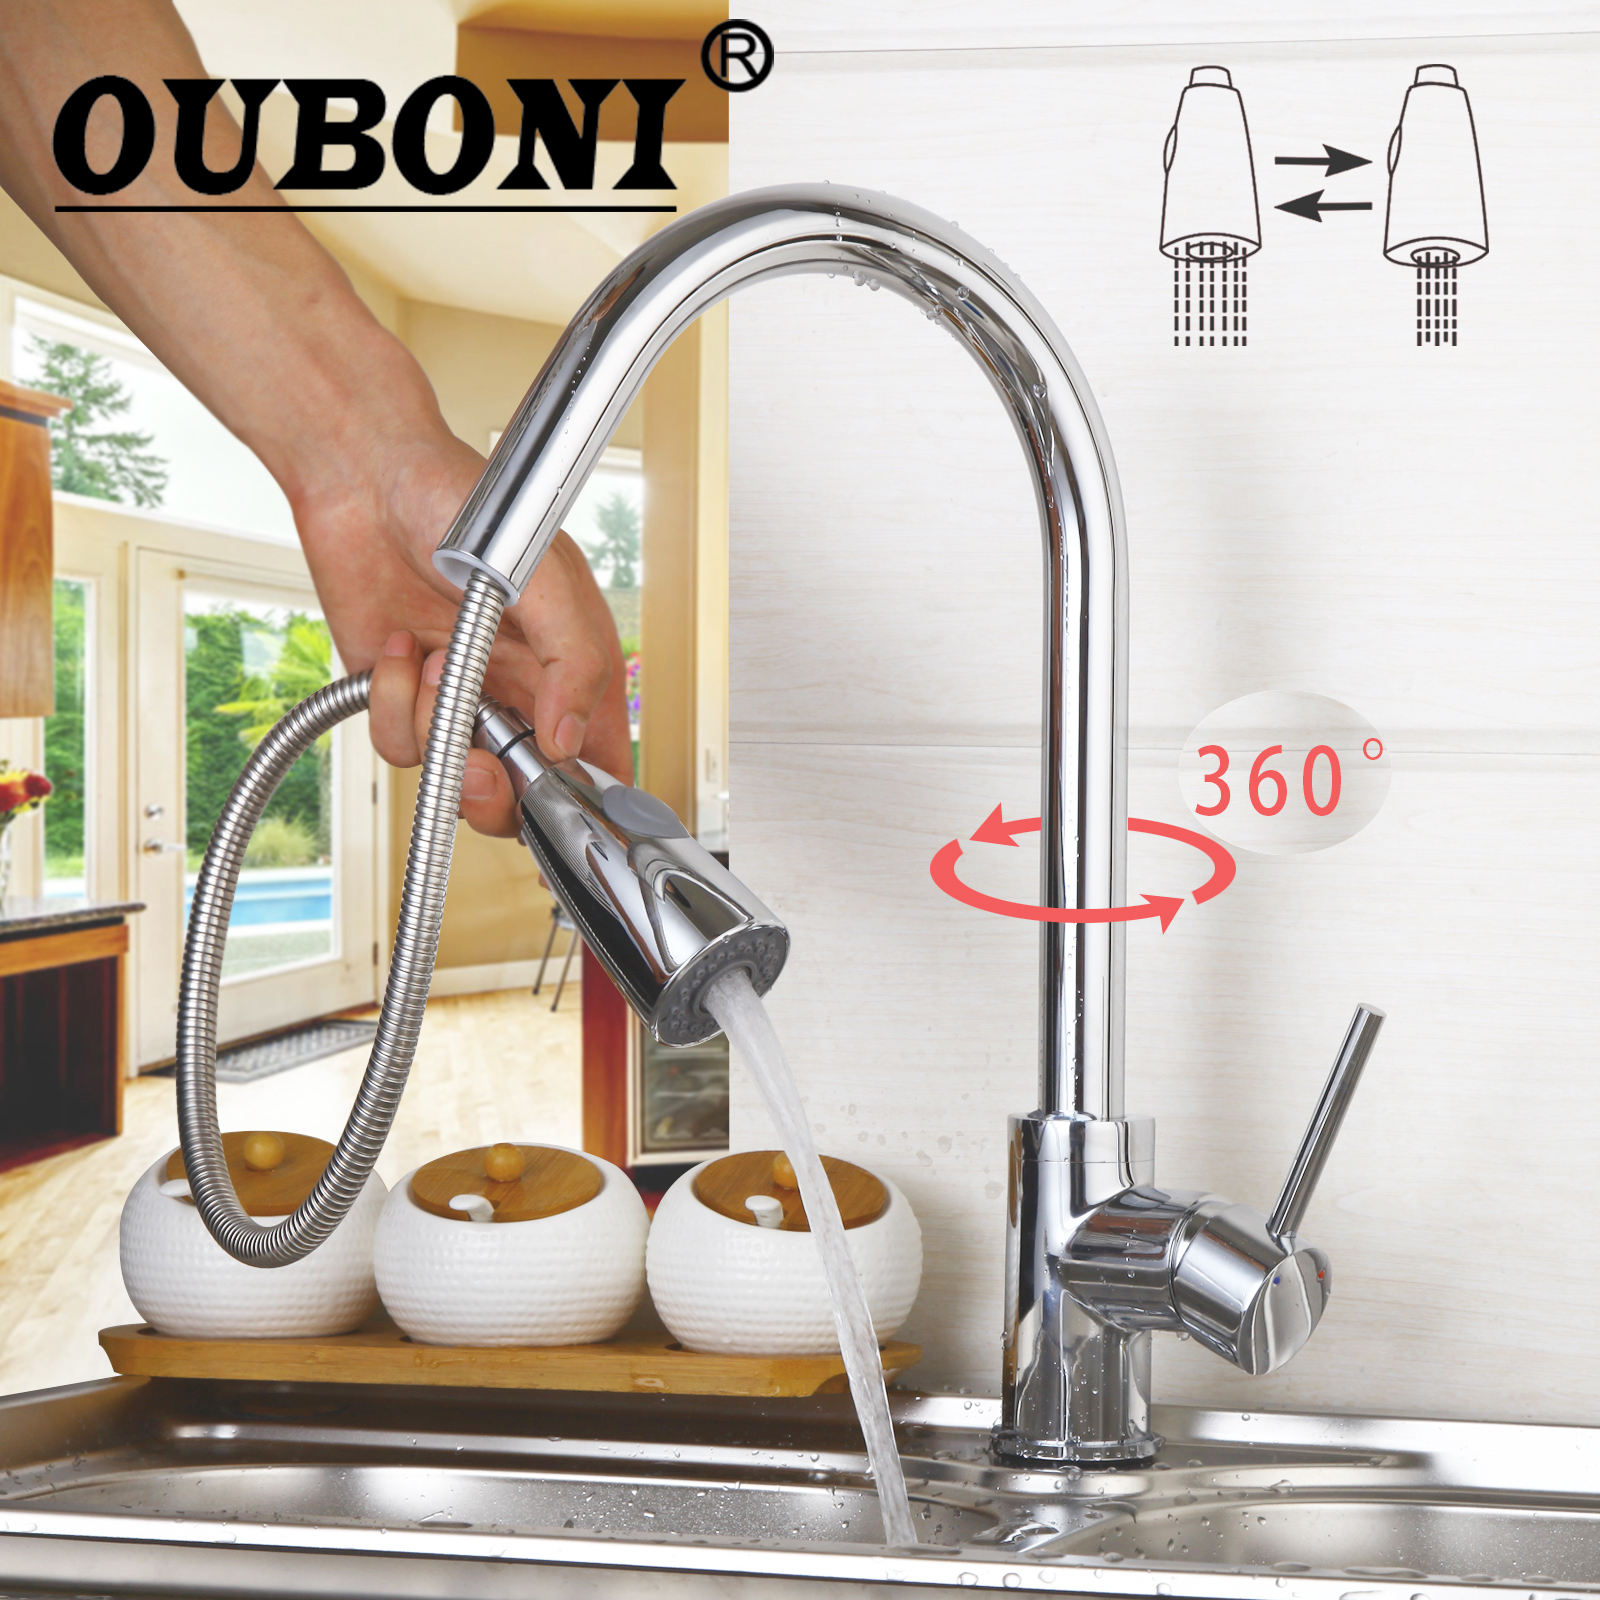 OUBONI 360 Swivel Stream Pull Out Spout Contemporary Kitchen Sink Faucet Polish Chrome Brass Hot & Cold Water Mixer Tap modern new chrome kitchen faucet pull out single handle swivel spout vessel sink mixer tap hot and cold water waterfall lh 6073l